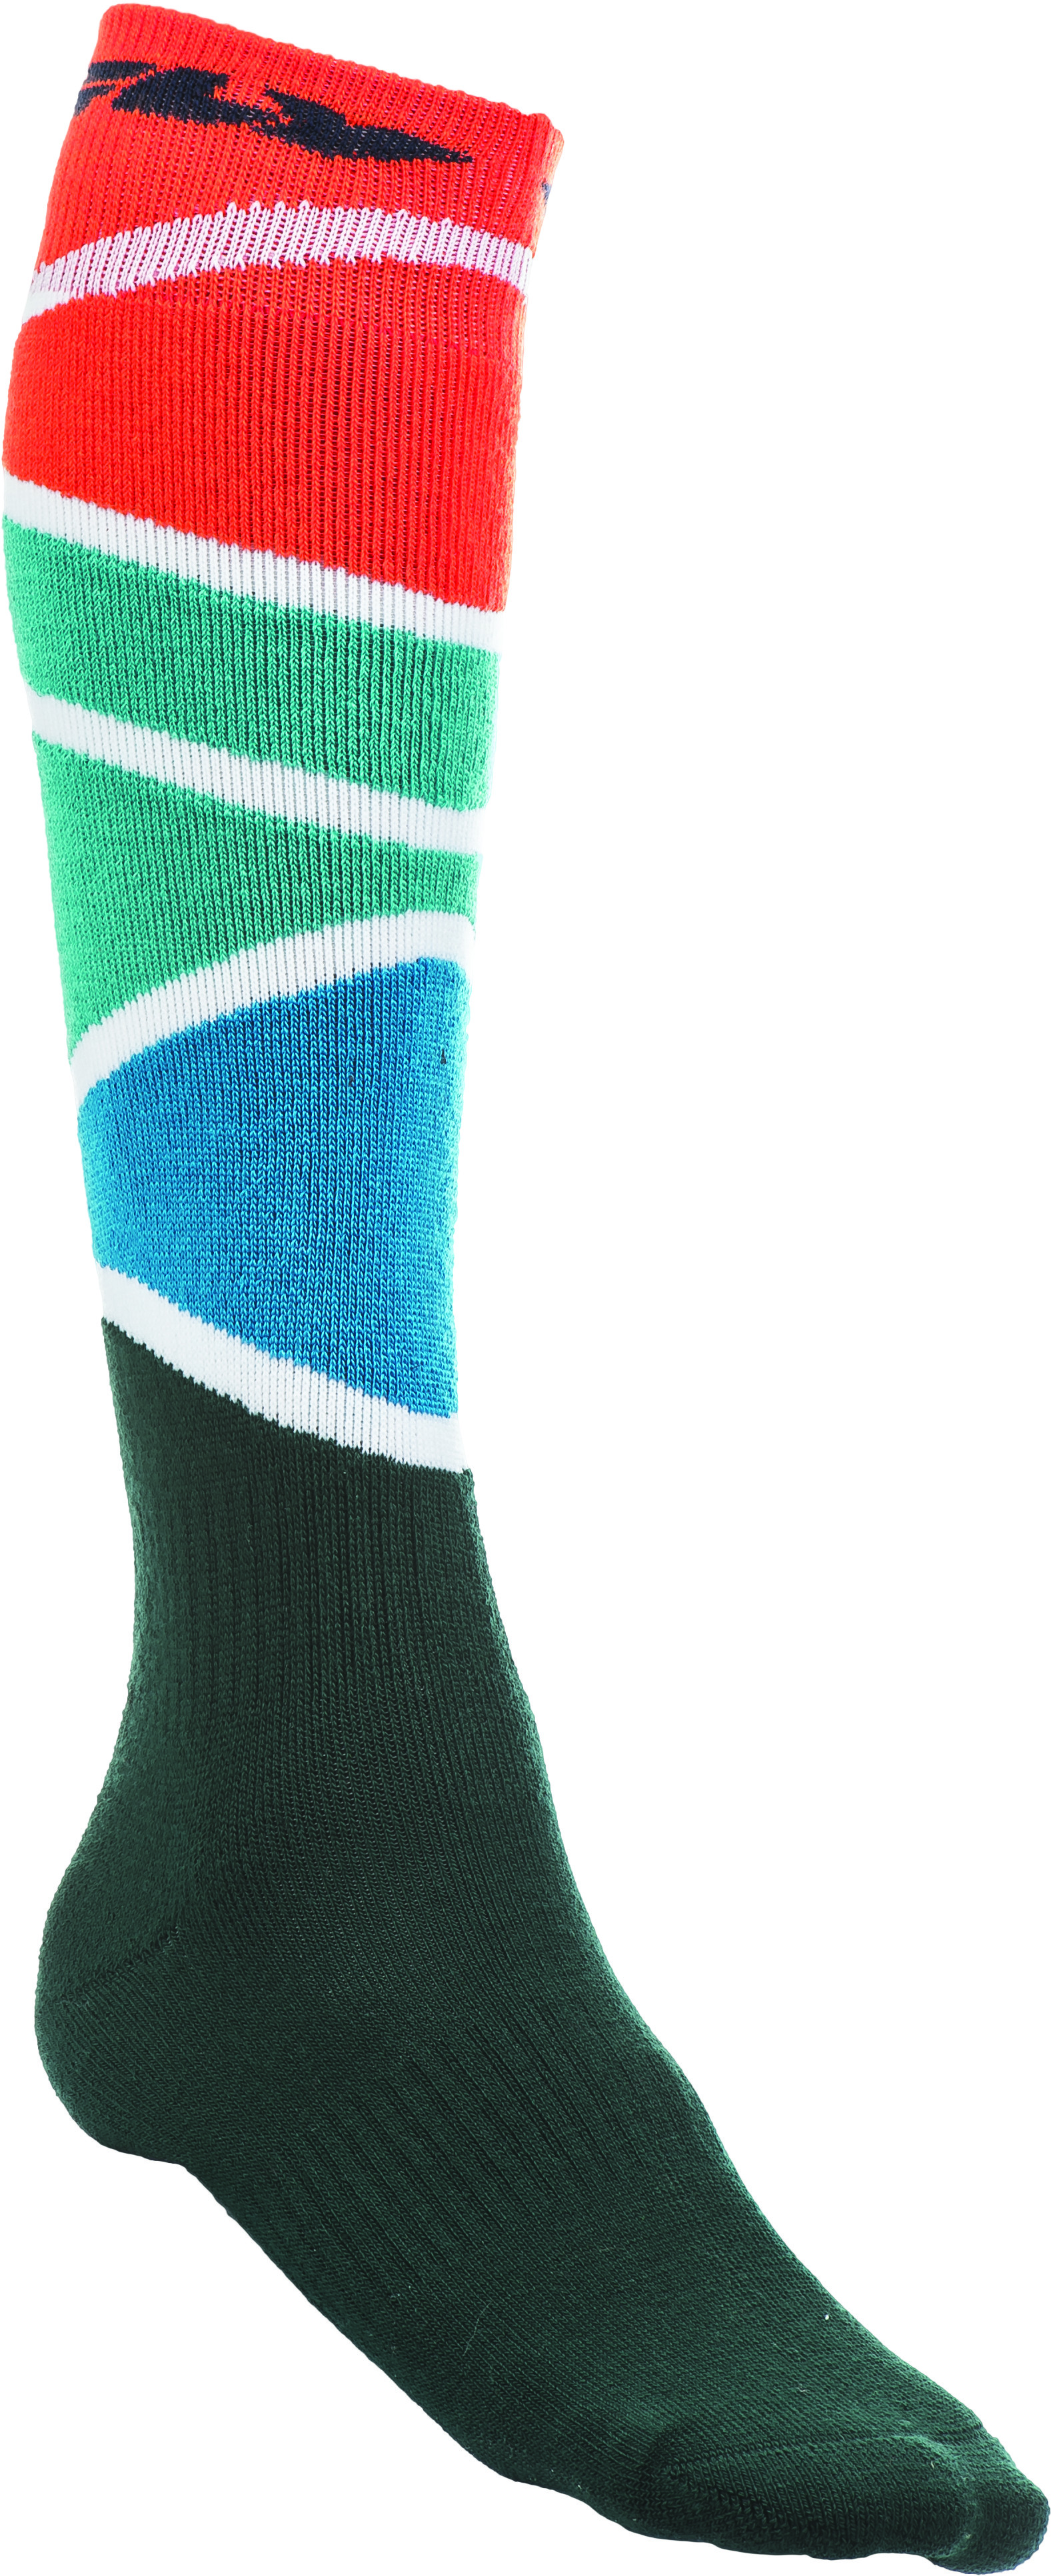 Mx Sock Thick Orange/Teal/Black L/X